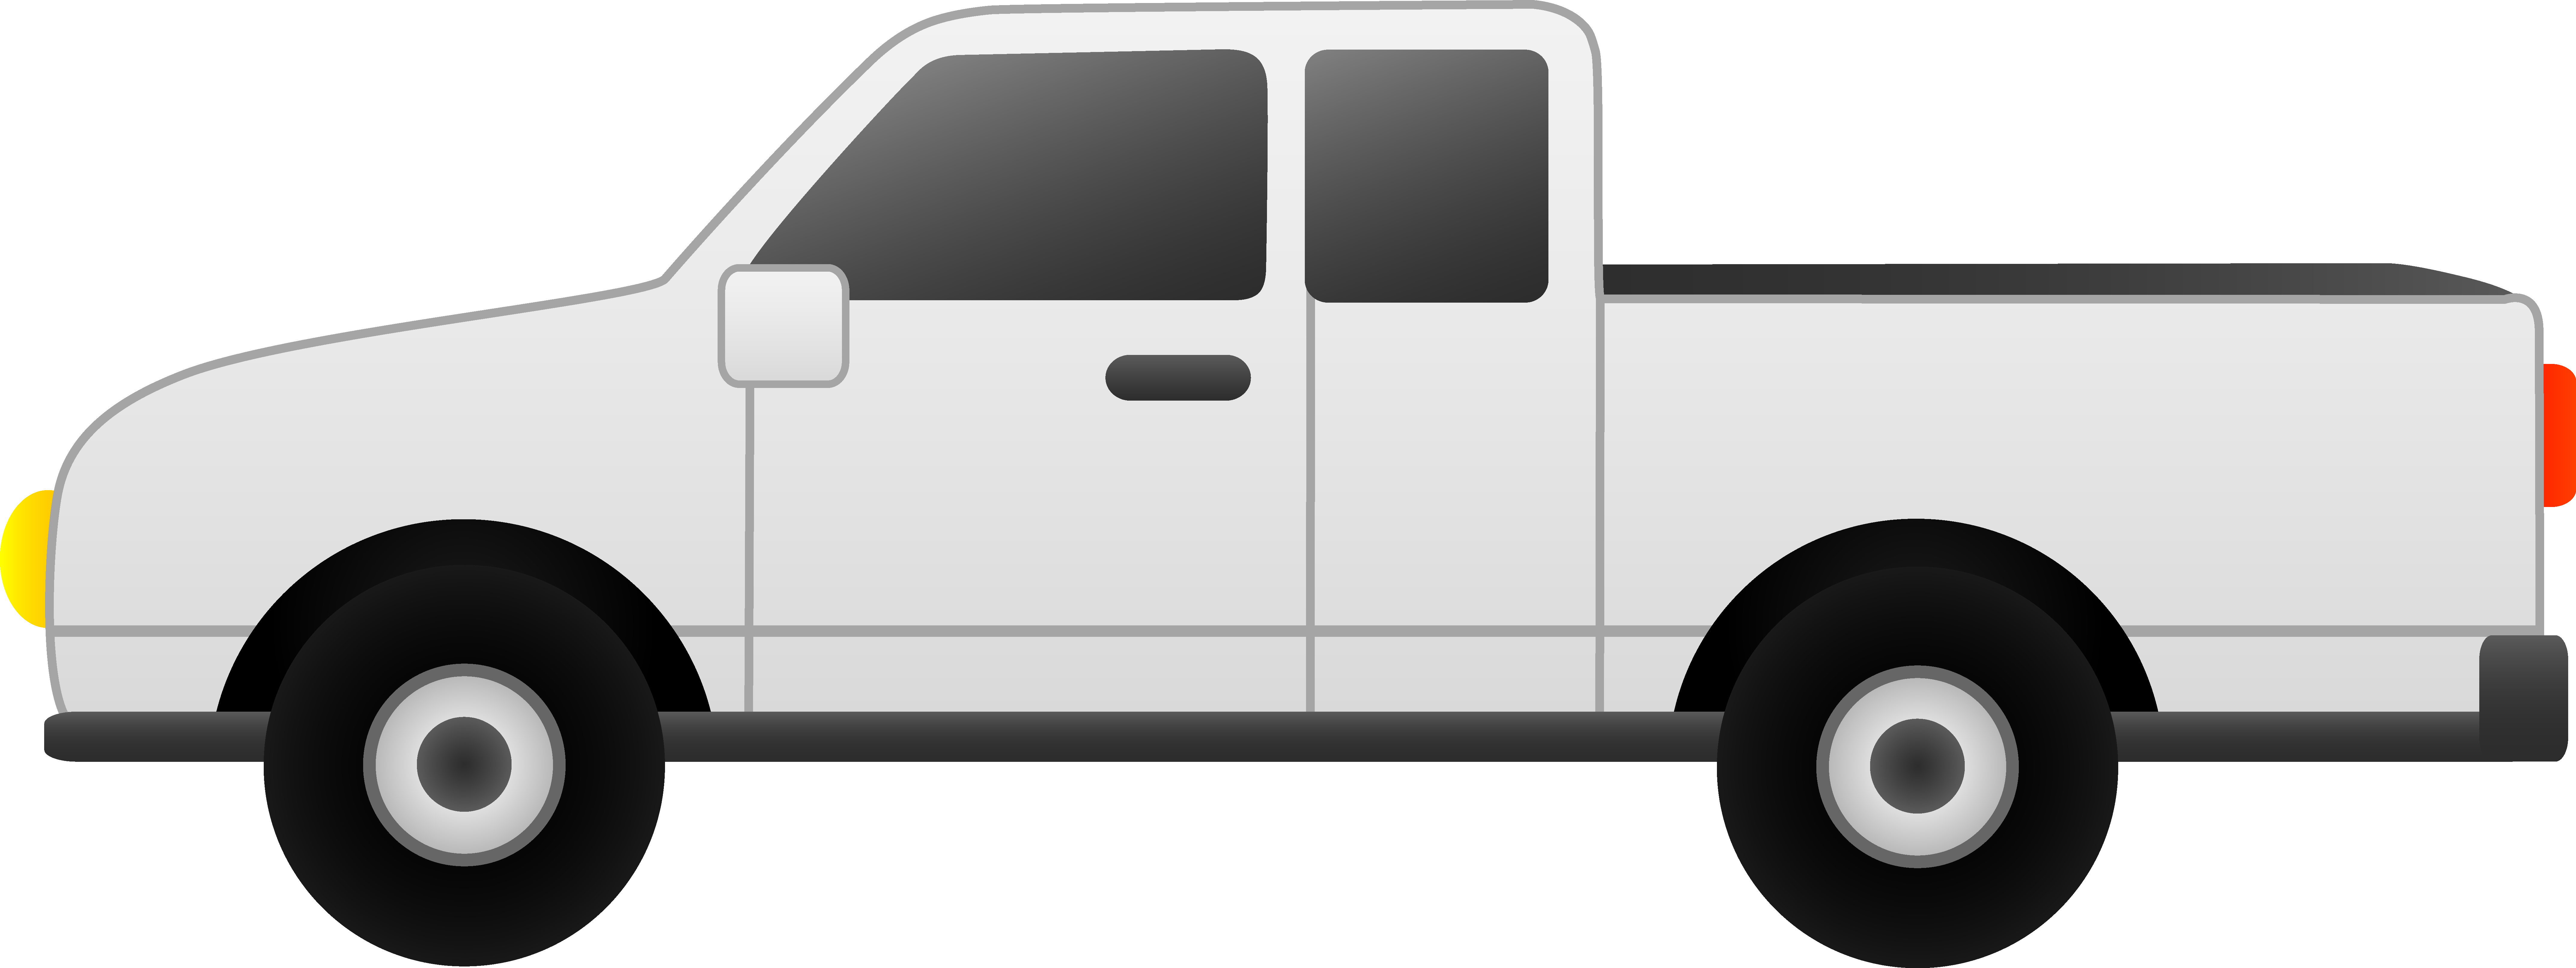 Free pick up truck silloette clipart image graphic free library Free Pick Up Truck Silhouette, Download Free Clip Art, Free Clip Art ... graphic free library